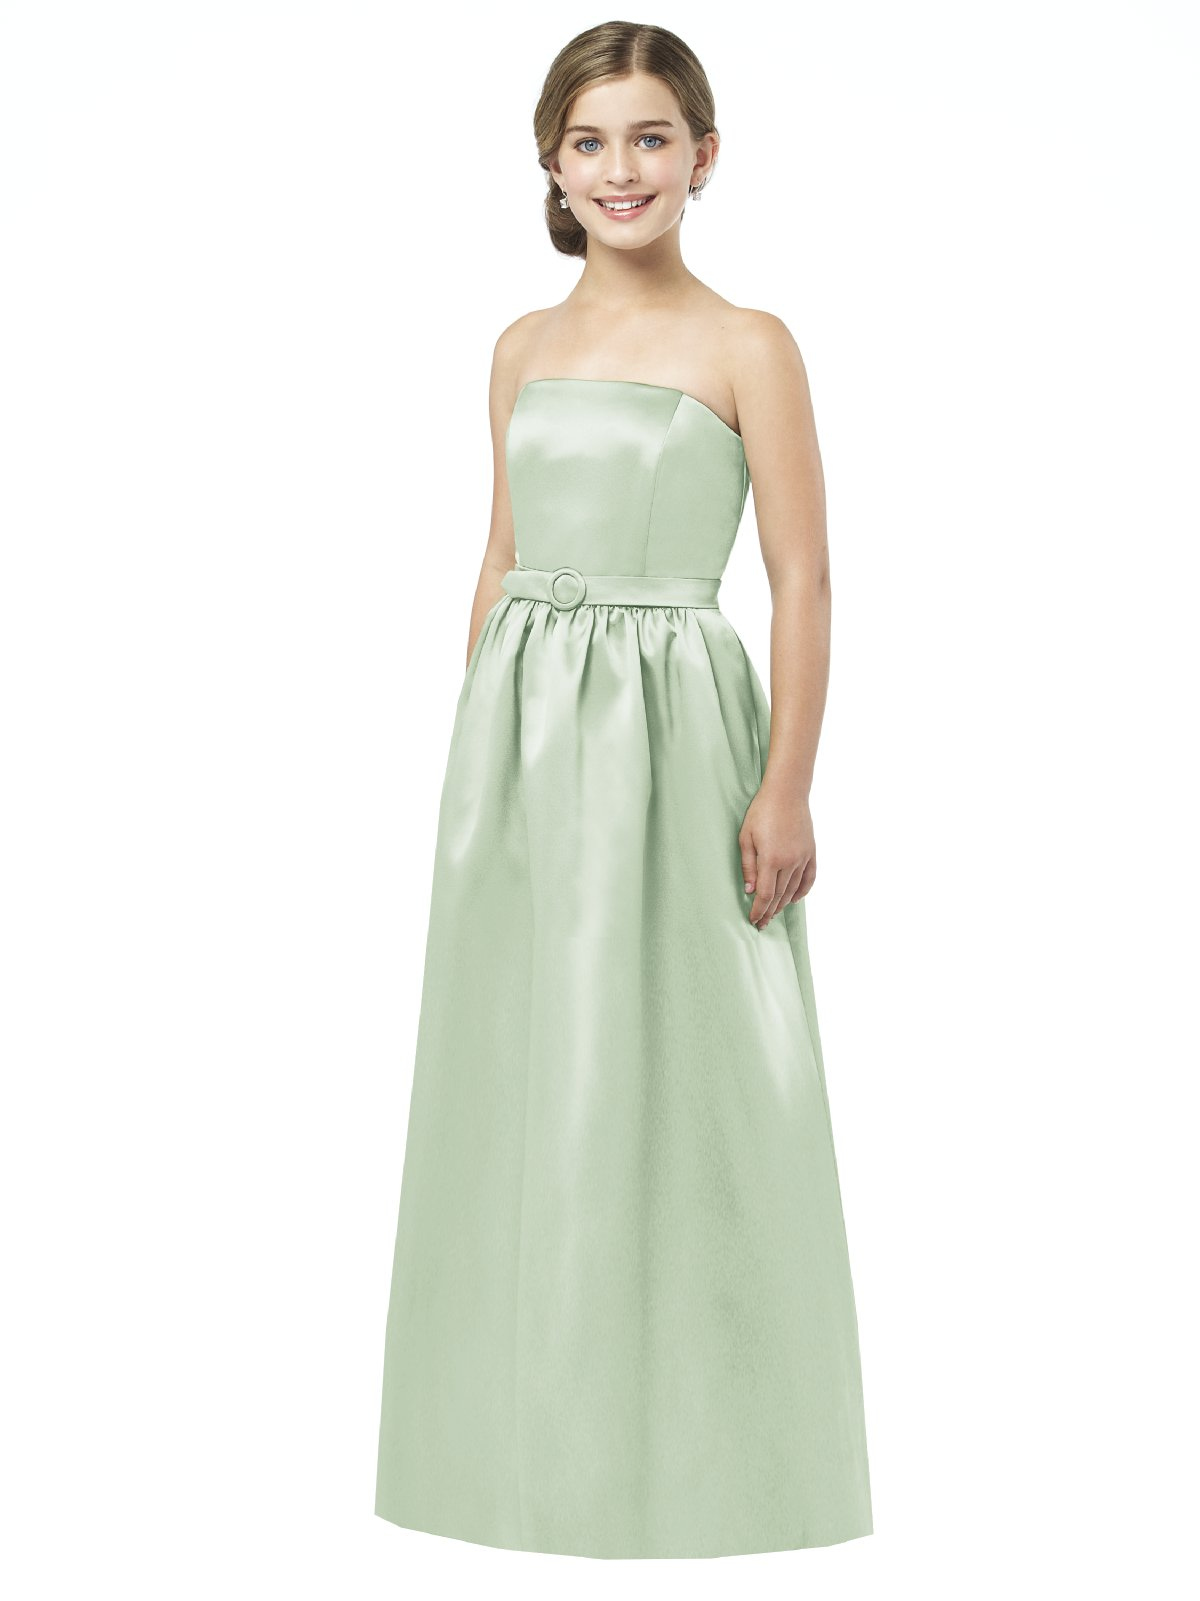 Pale Sage A Line Strapless Zipper Floor Length Satin Prom Dresses With Belt And Draped Skirt